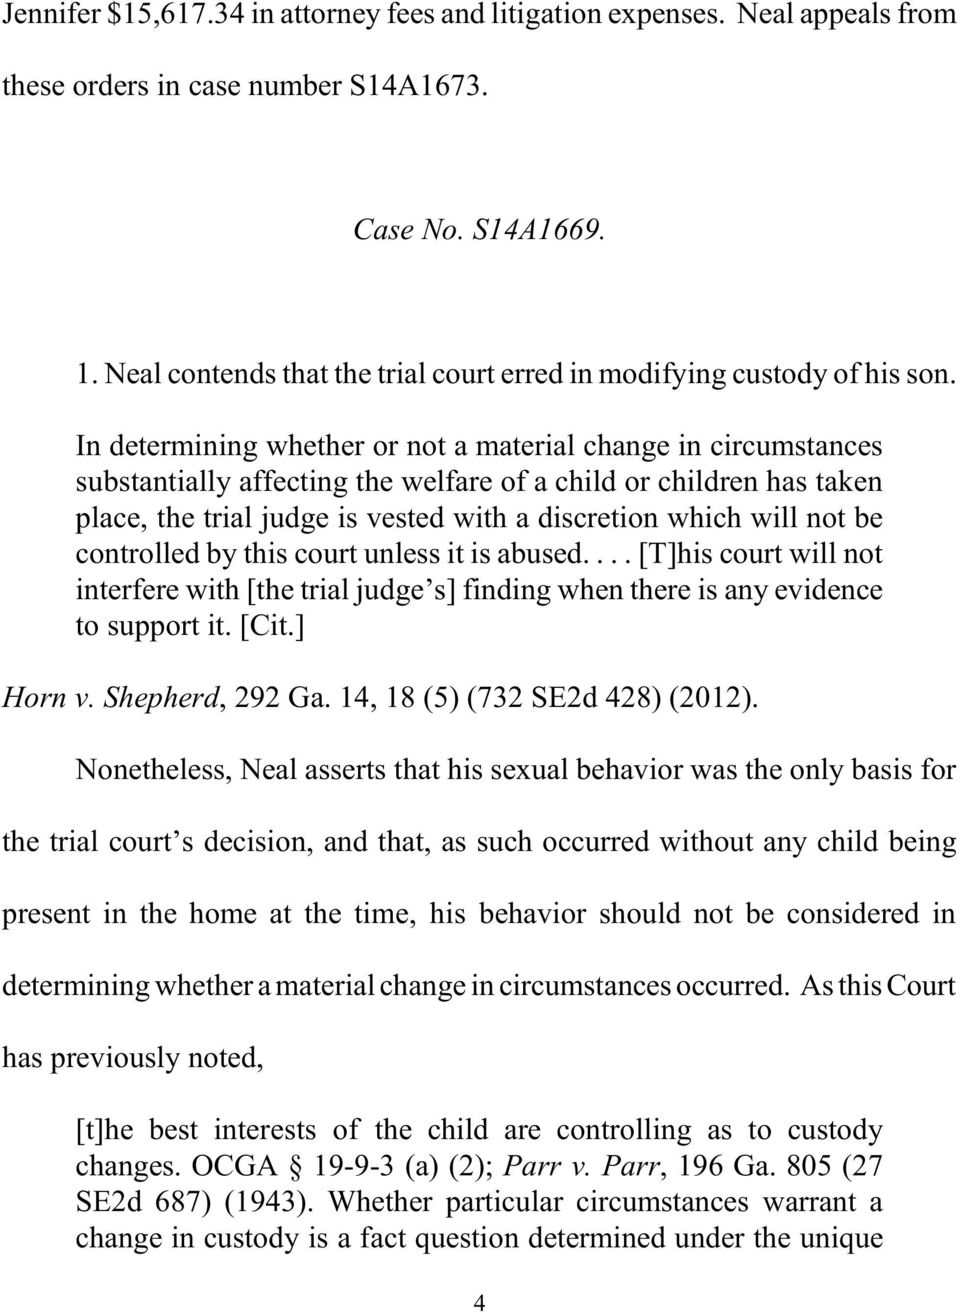 In determining whether or not a material change in circumstances substantially affecting the welfare of a child or children has taken place, the trial judge is vested with a discretion which will not